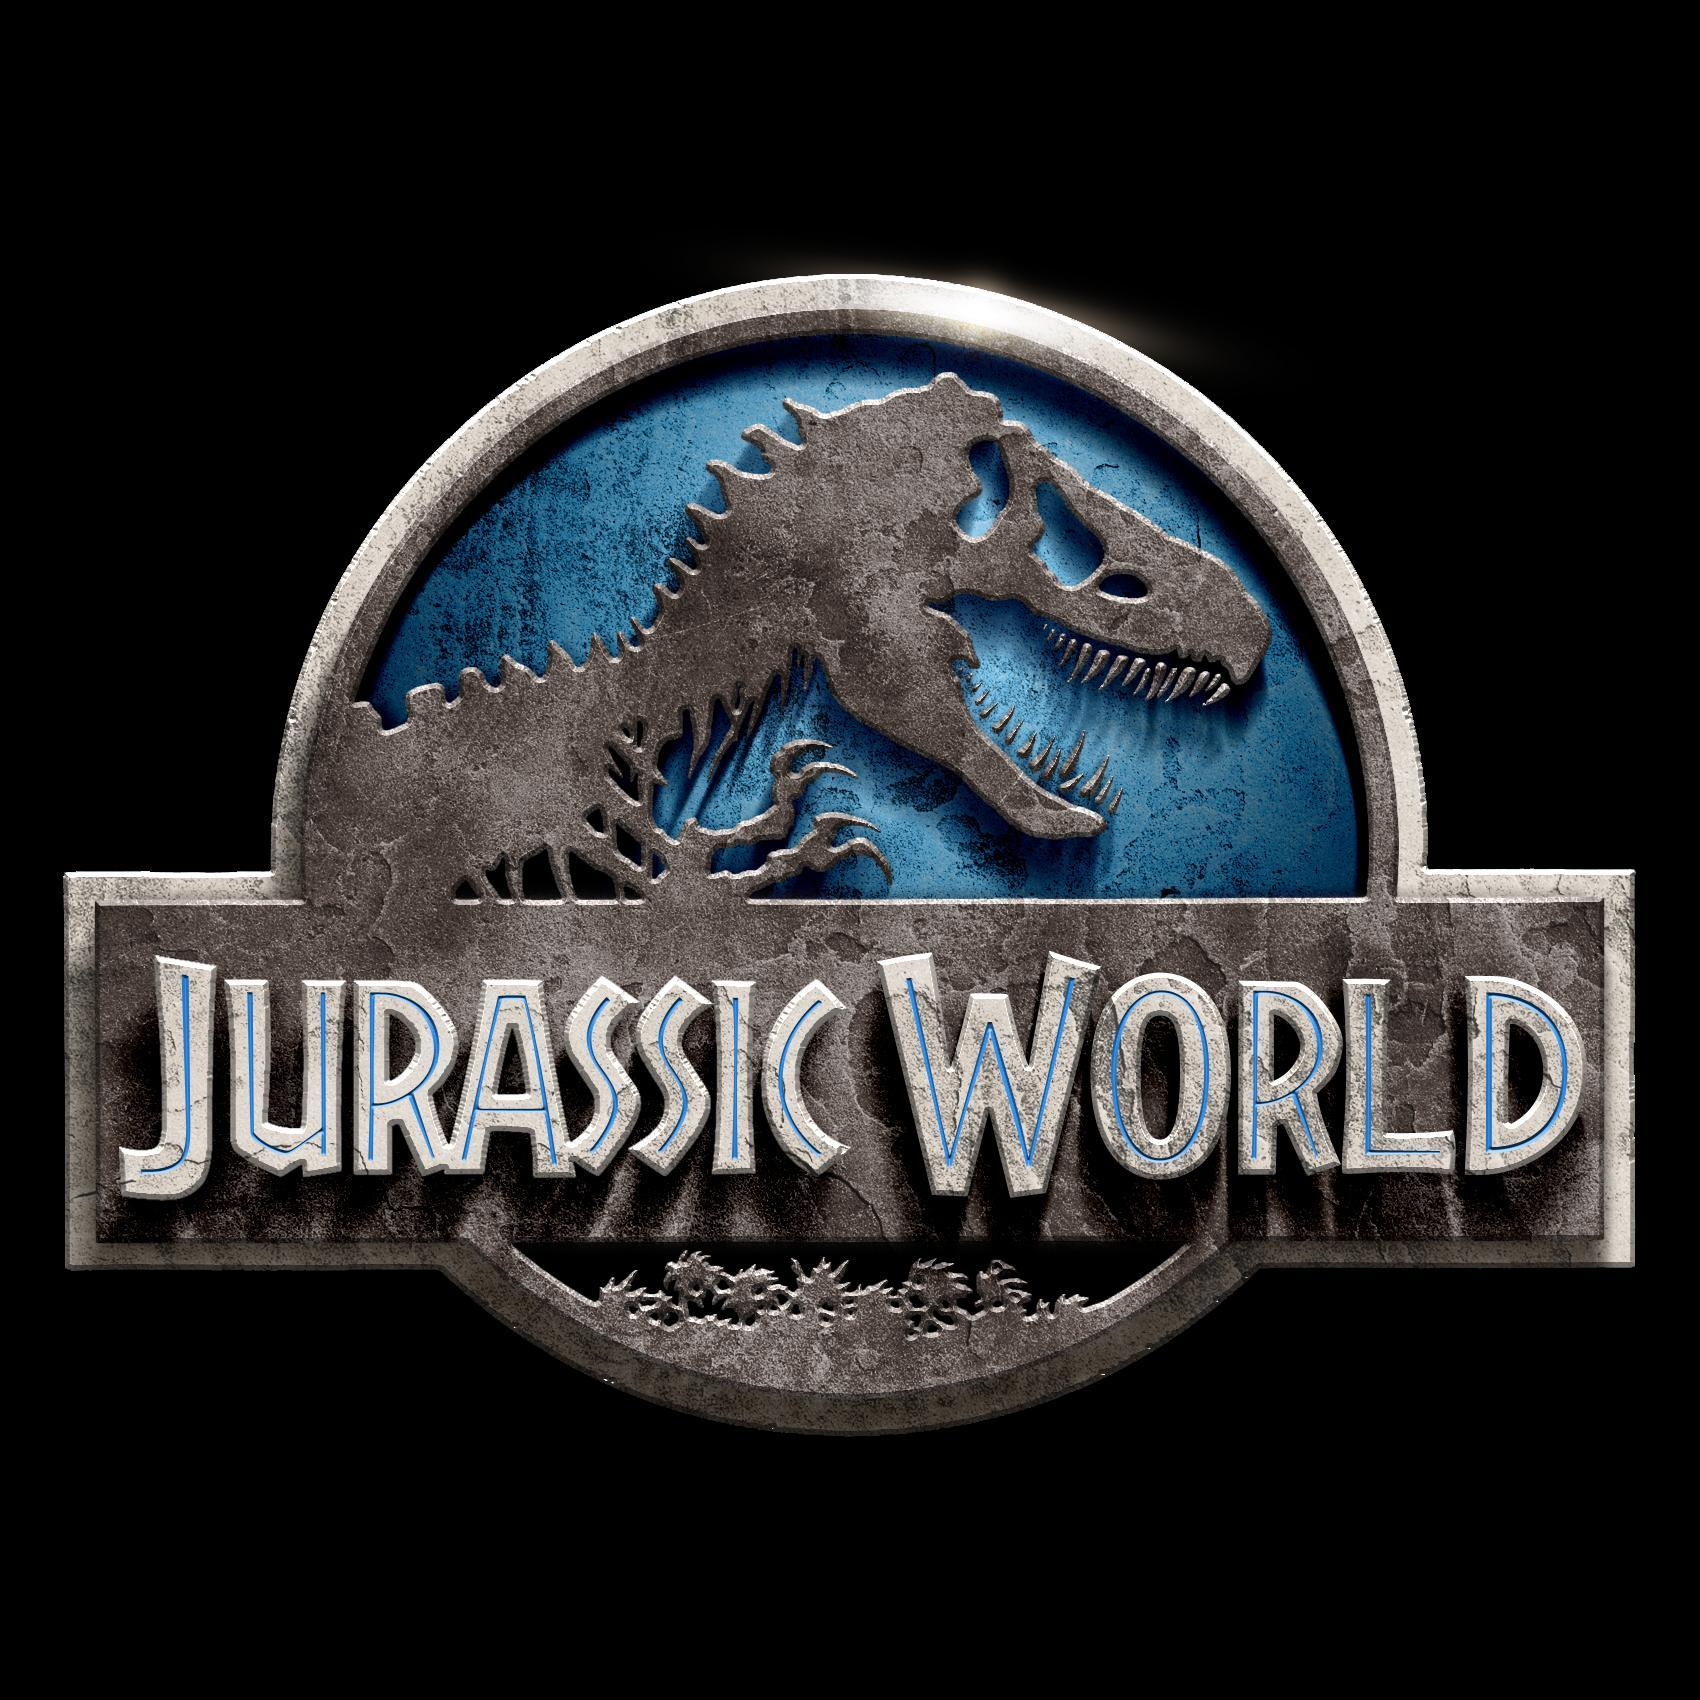 Jurassic World Devours The Competition J Brenizer 2469 jurassic world logo 3d models. jurassic world devours the competition